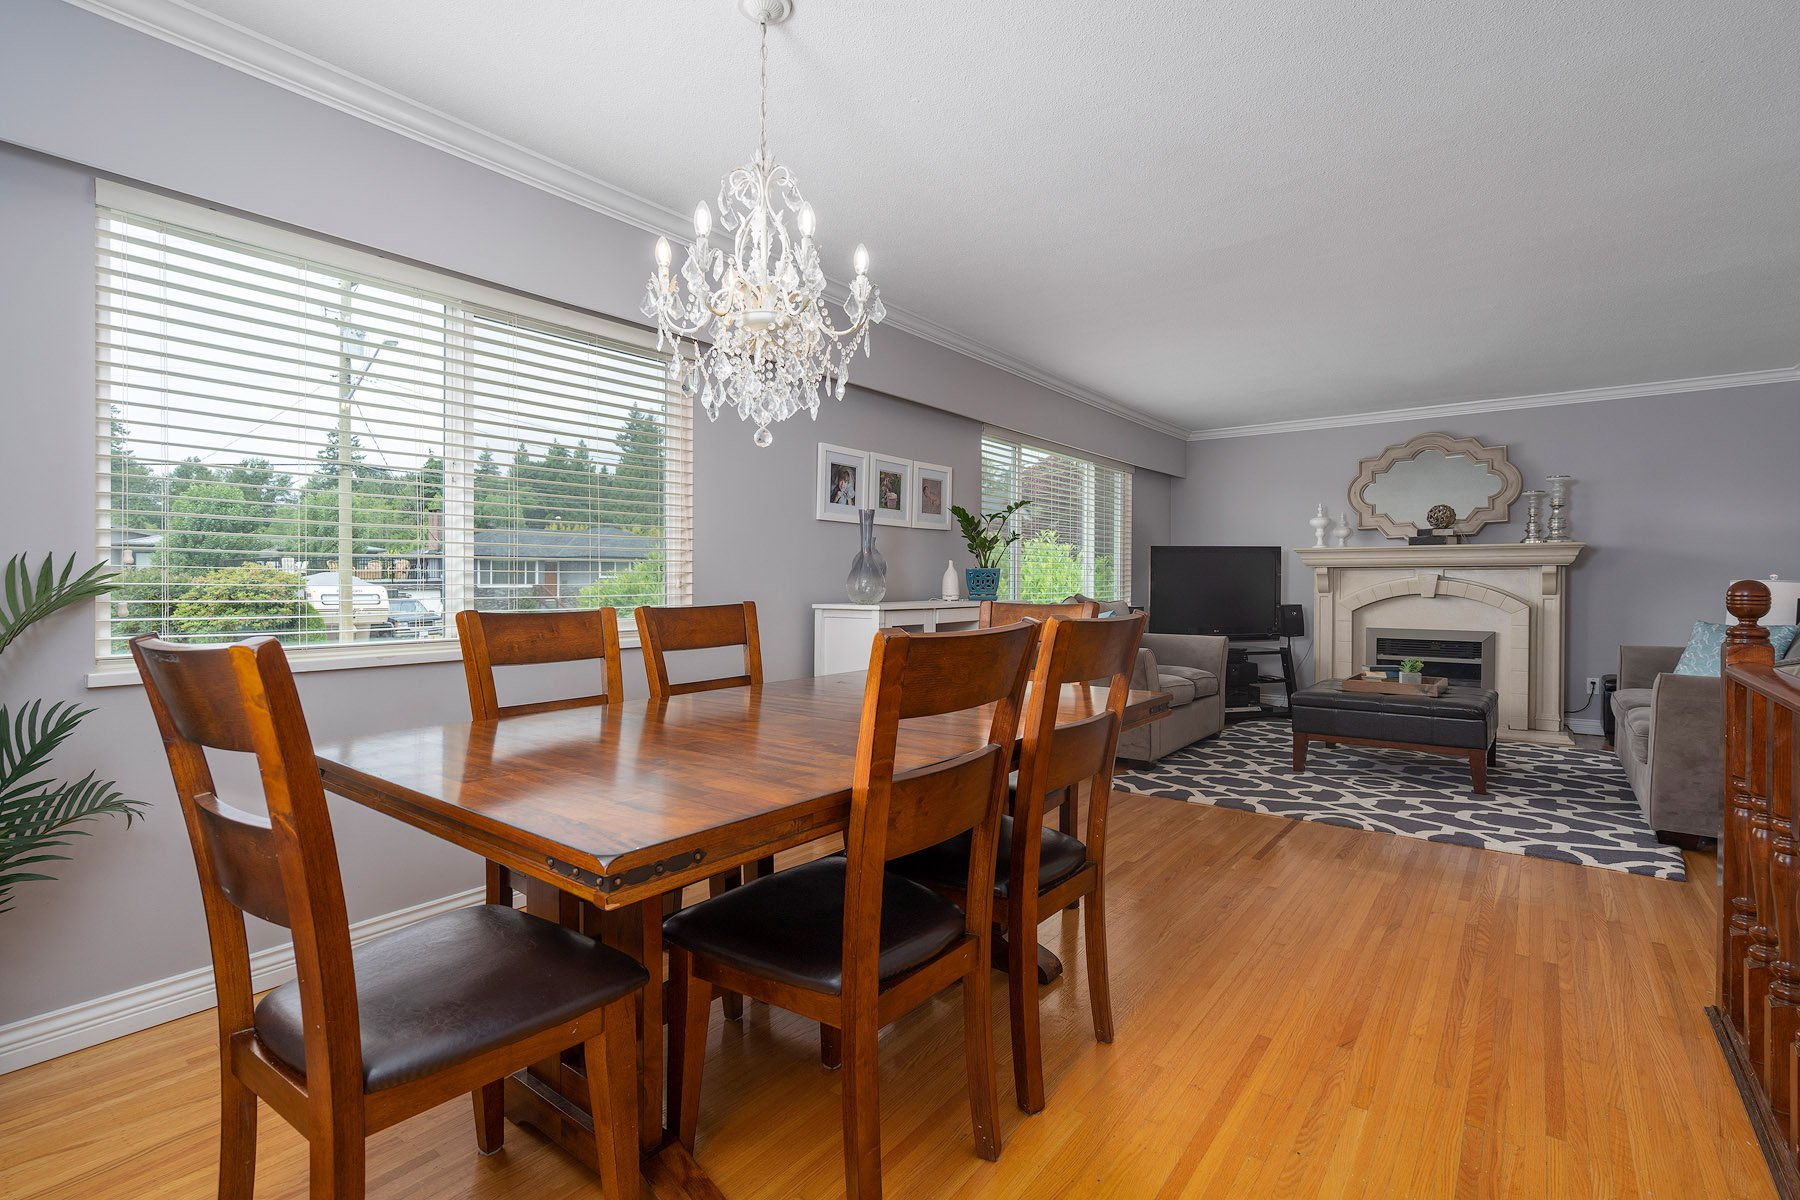 Photo 7: Photos: 423 MONTGOMERY Street in Coquitlam: Central Coquitlam House for sale : MLS®# R2380693